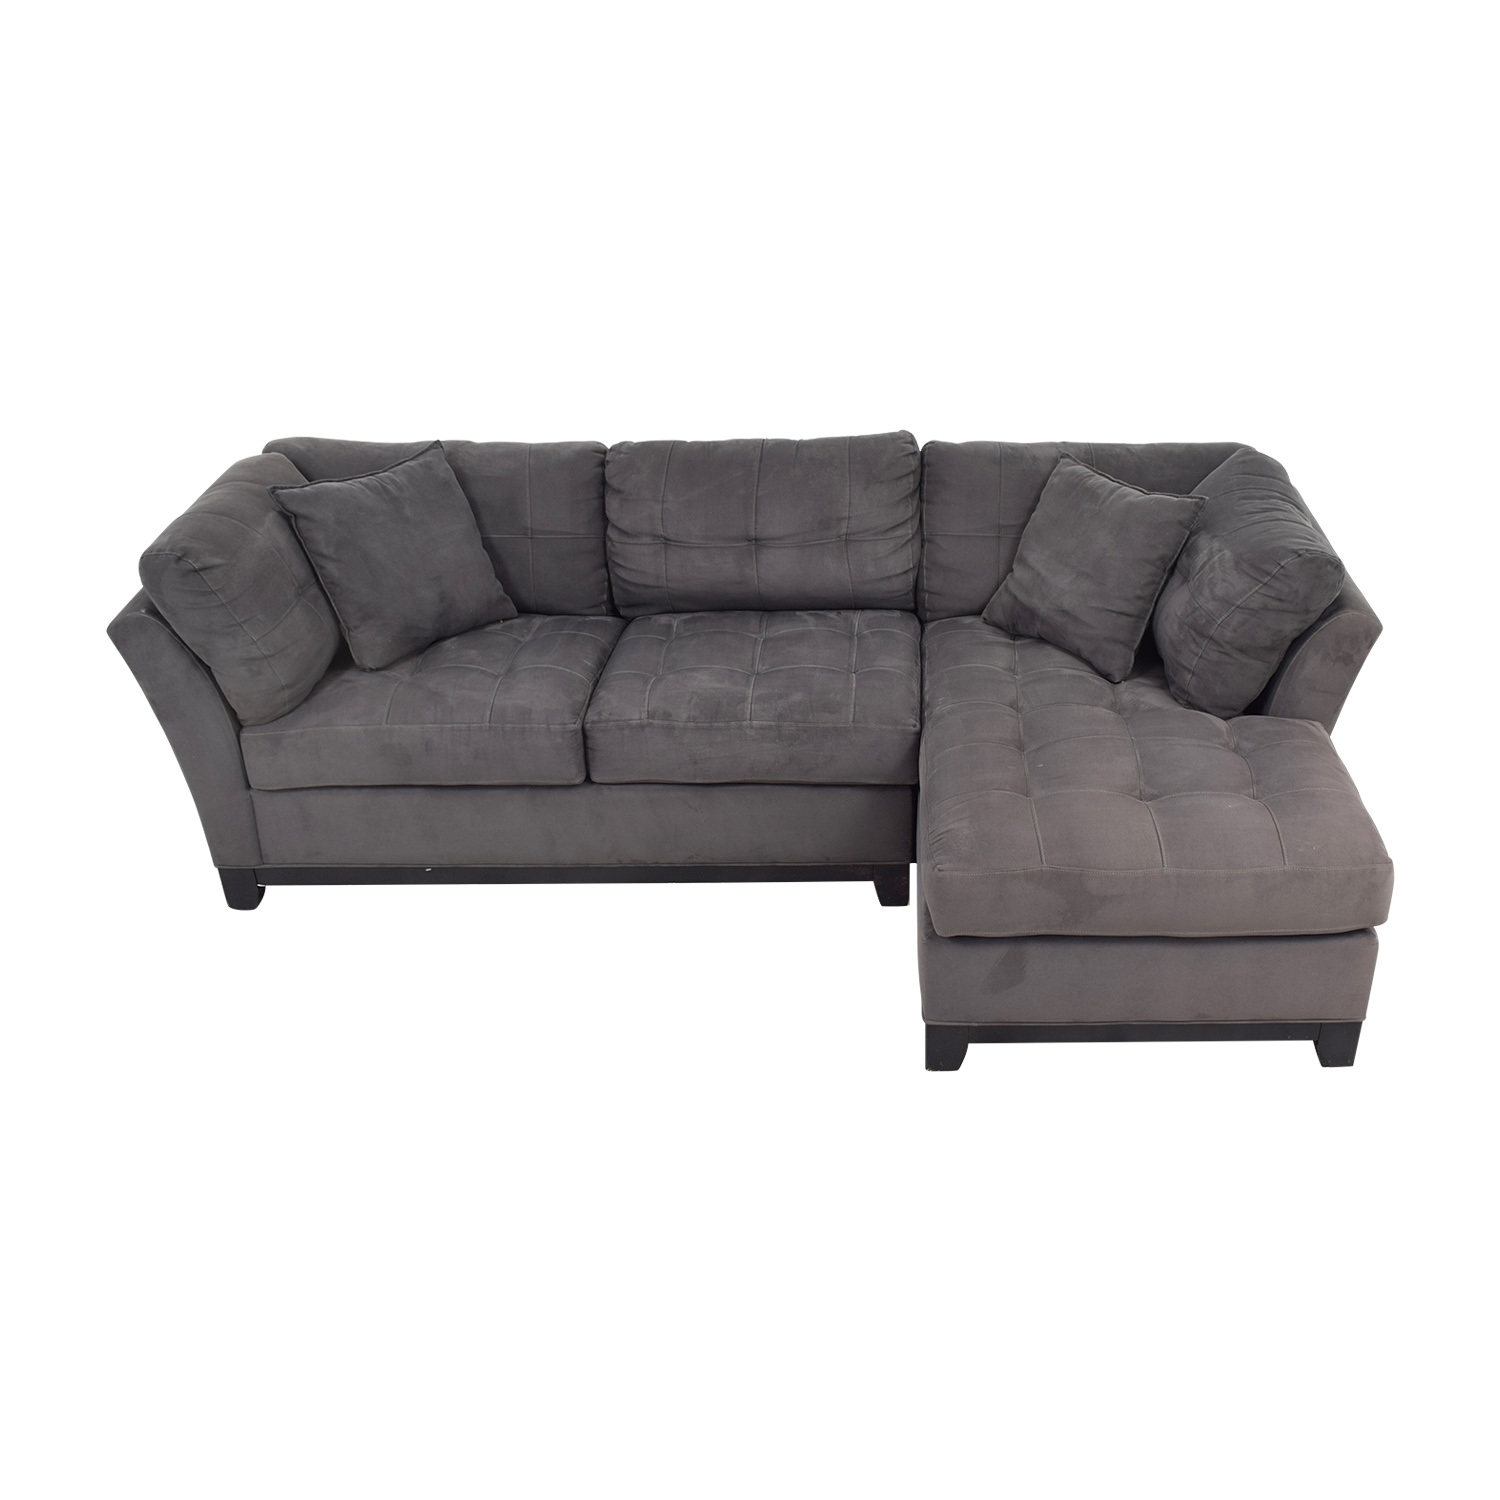 Raymour u0026 Flanigan Raymour u0026 Flanigan Charcoal Tufted Chaise Sectional nyc  sc 1 st  Furnishare : used sectional sofas for sale - Sectionals, Sofas & Couches